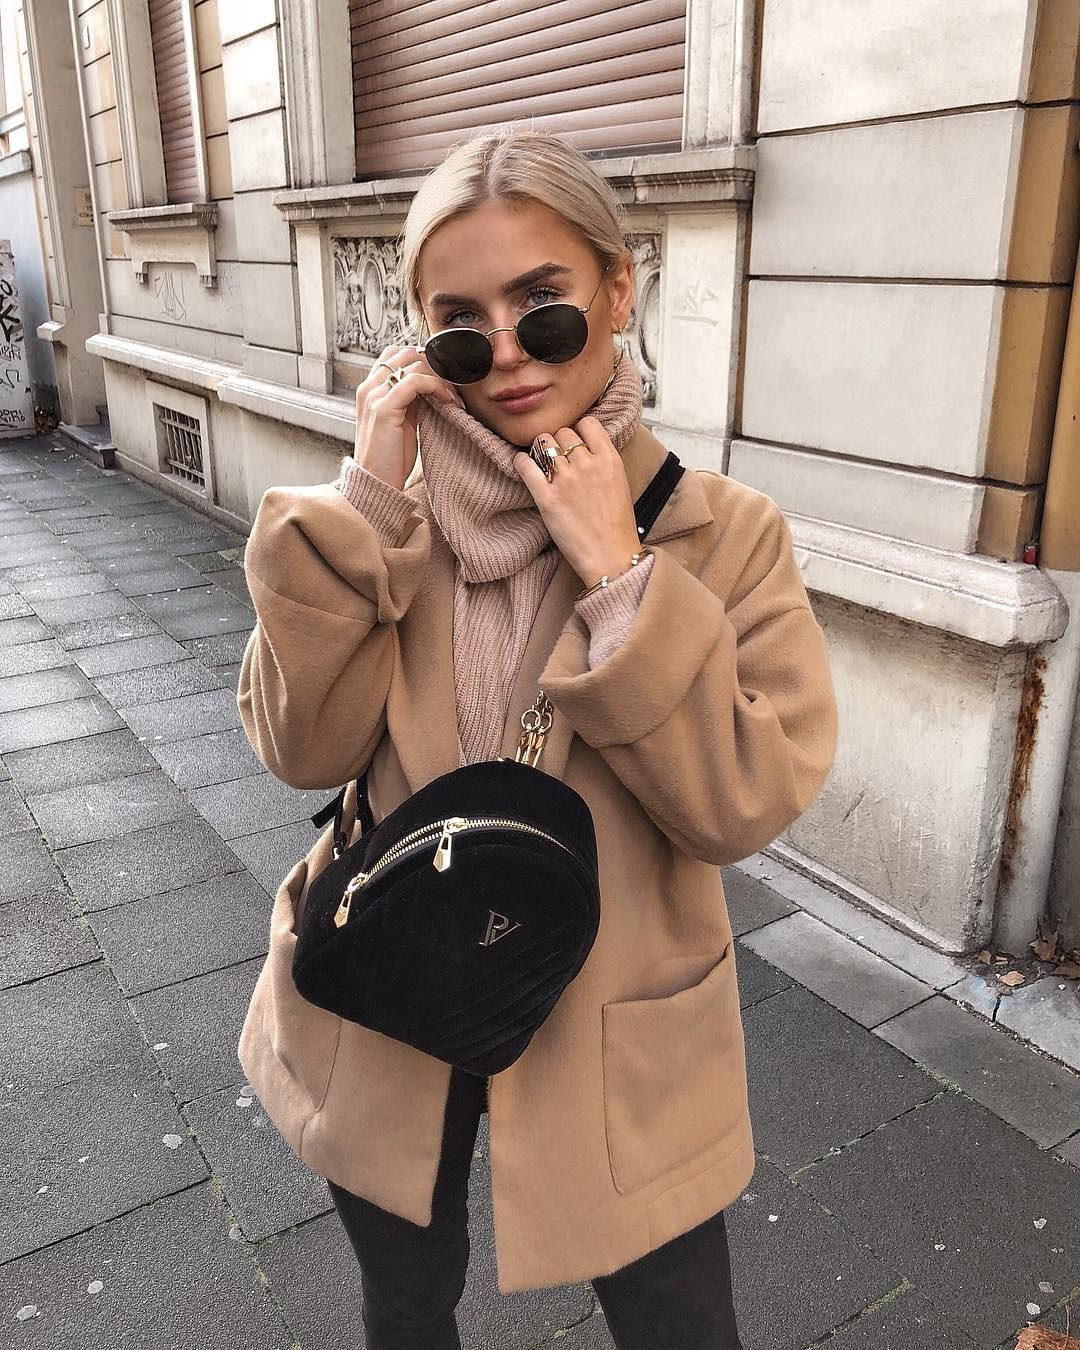 Romina Meier On Instagram Today S Look With My Mini Bagpack From